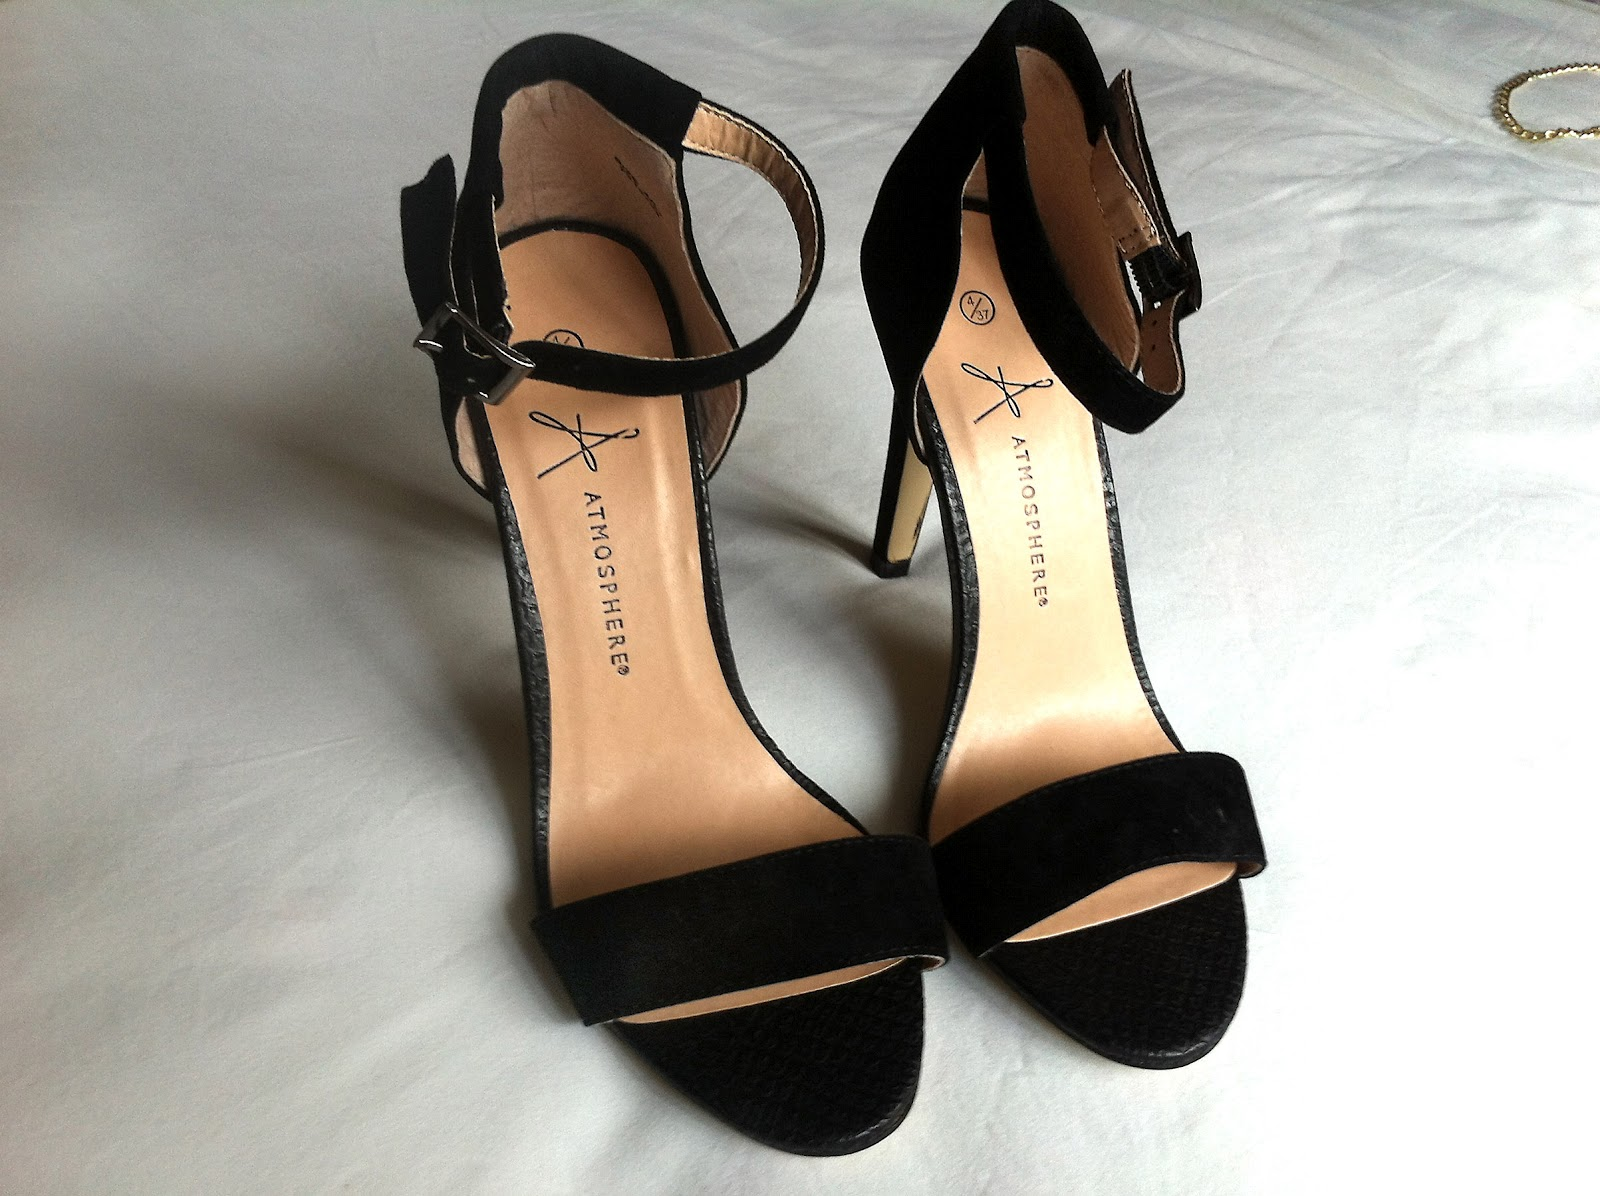 Black Strappy Shoes Primark